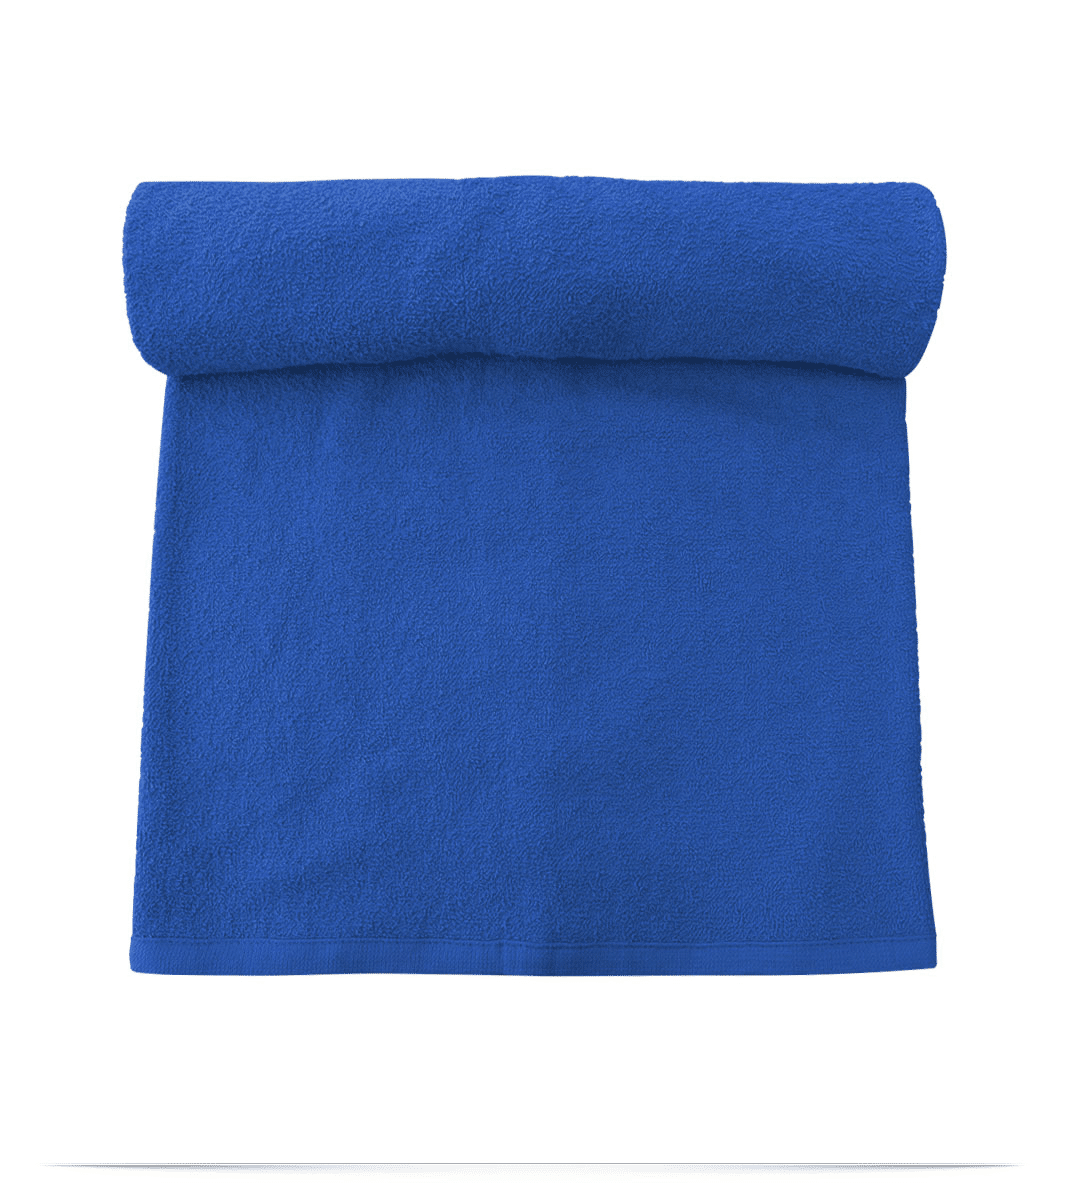 Embroidered Towels Online: Design Embroidered Personalized Beach Towel Online At